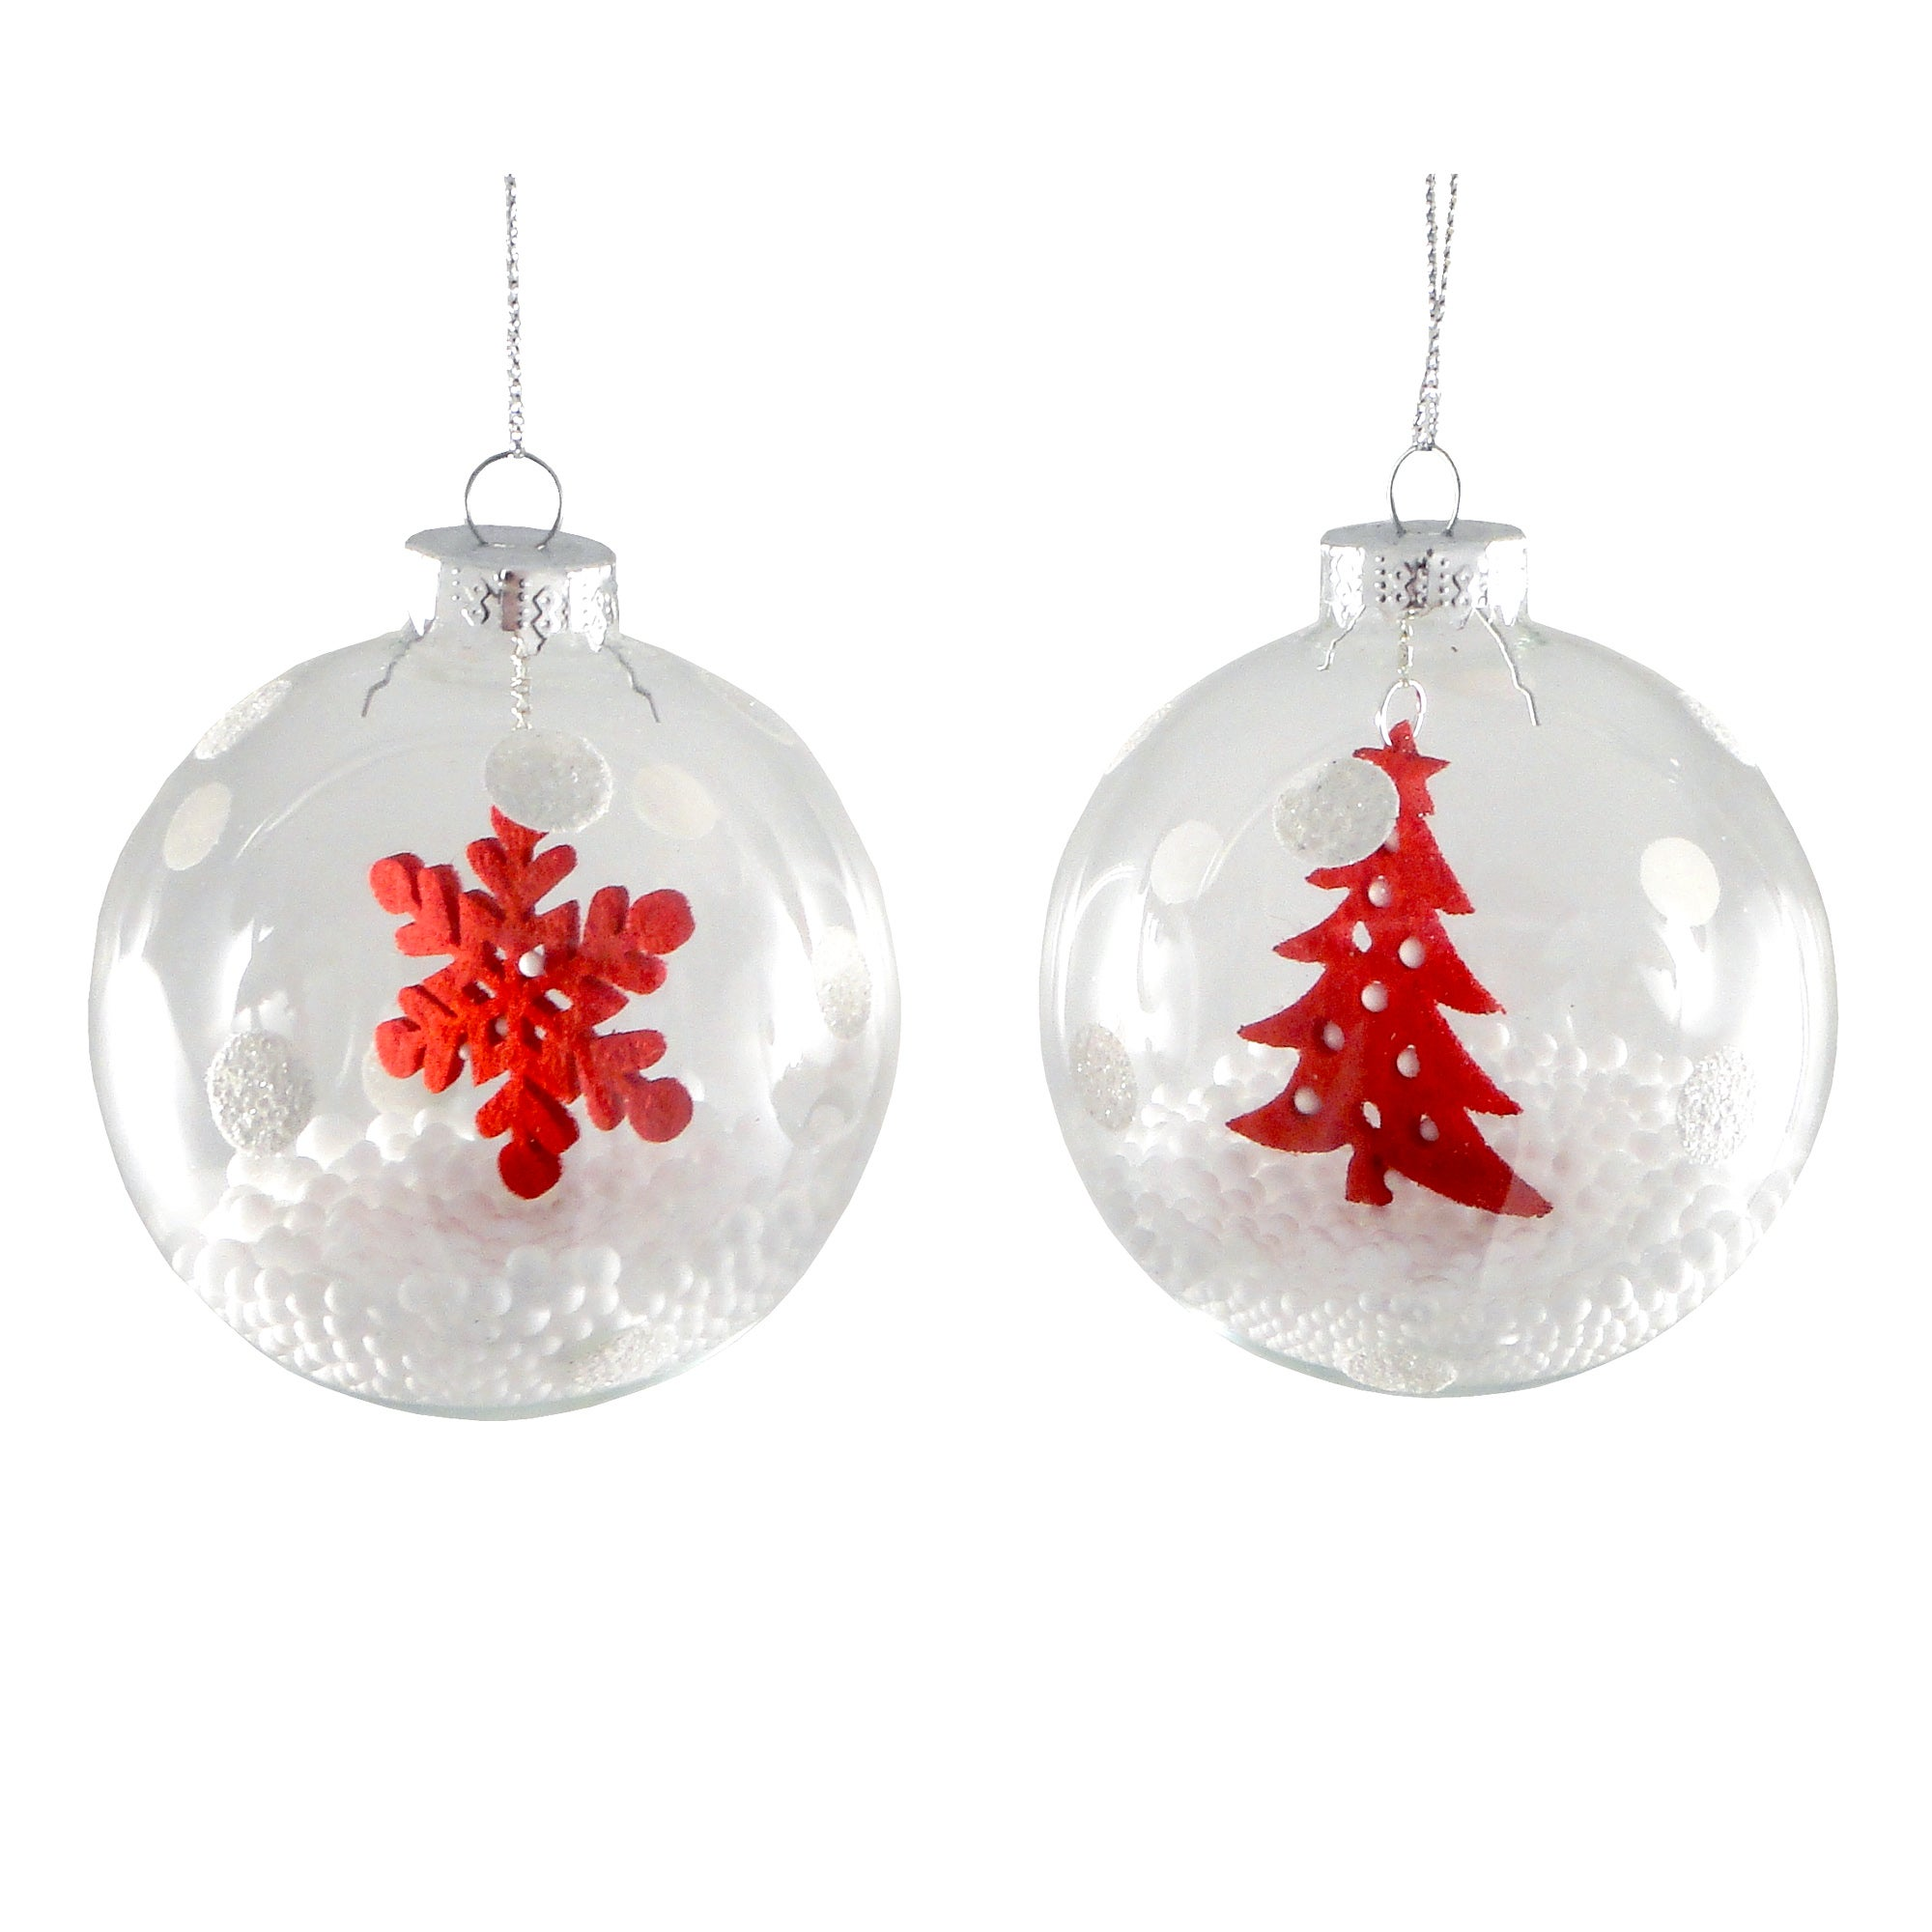 White Set of Two Snowball Baubles